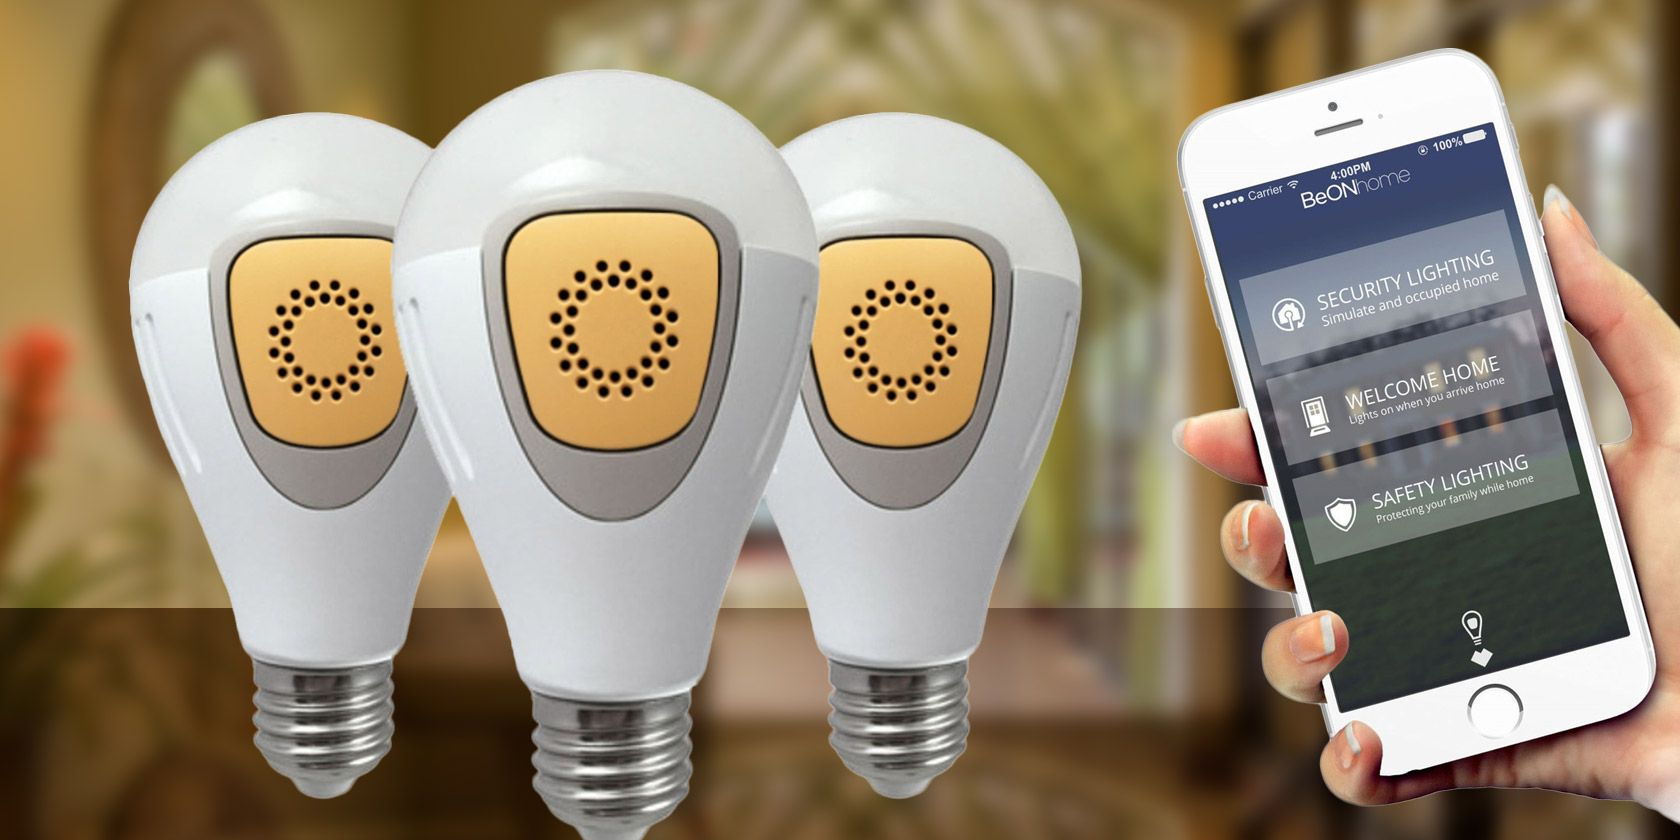 Smart LED BeON Bulbs can Protect your Home from Burglars